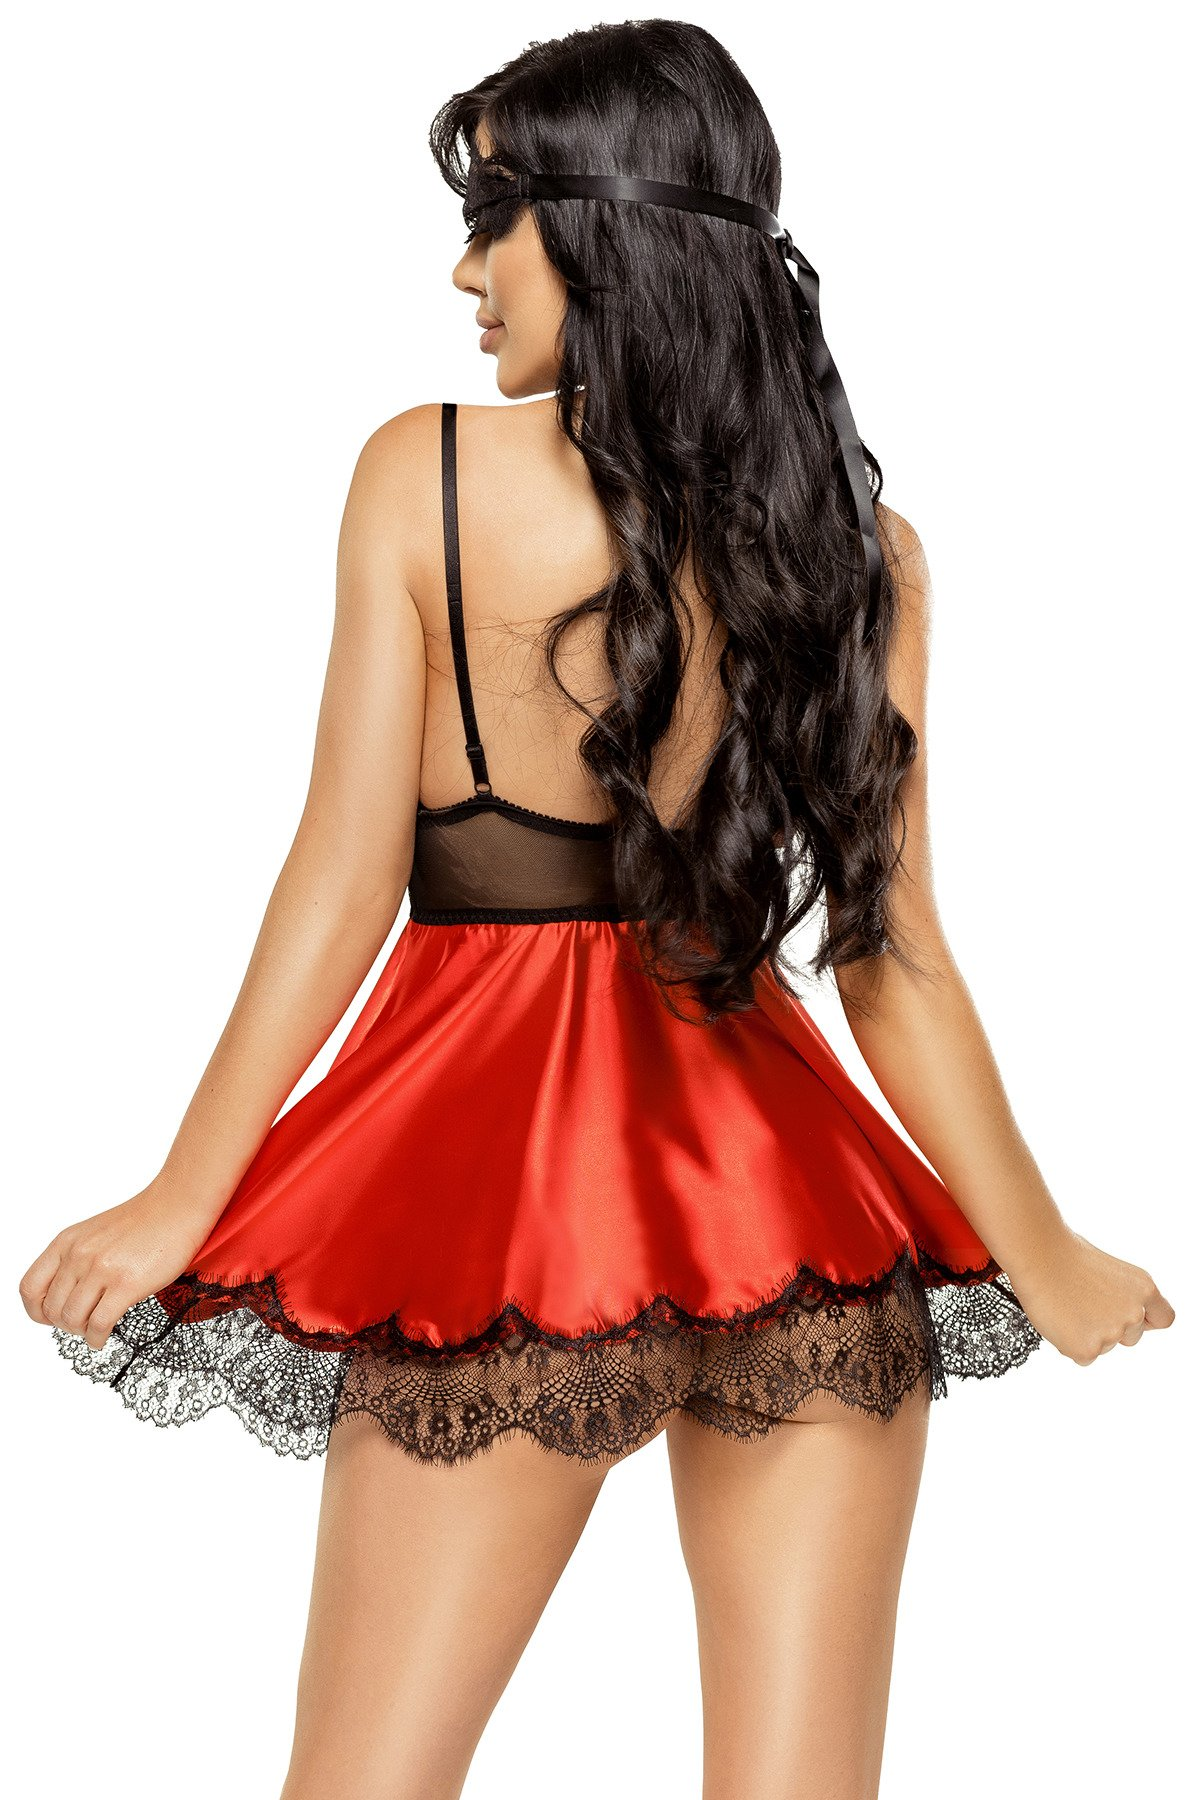 Eve chemise with mask red - Beauty Night